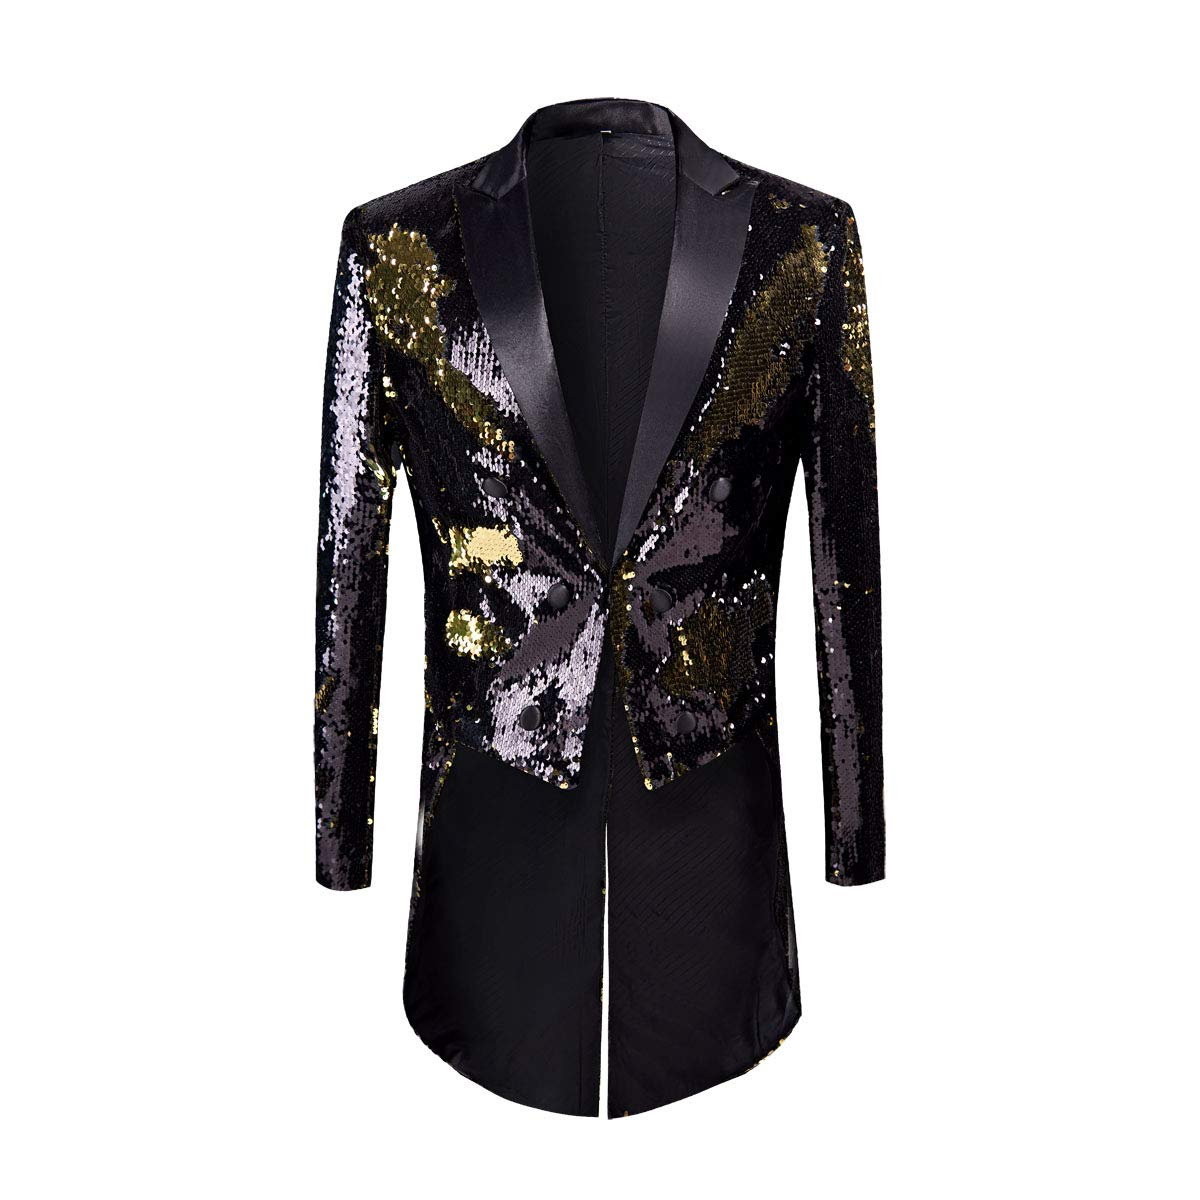 PYJTRL Mens Fashion Double-Color Sequins Tailcoat Tuxedo (Black + Gold, US 44R) by PYJTRL